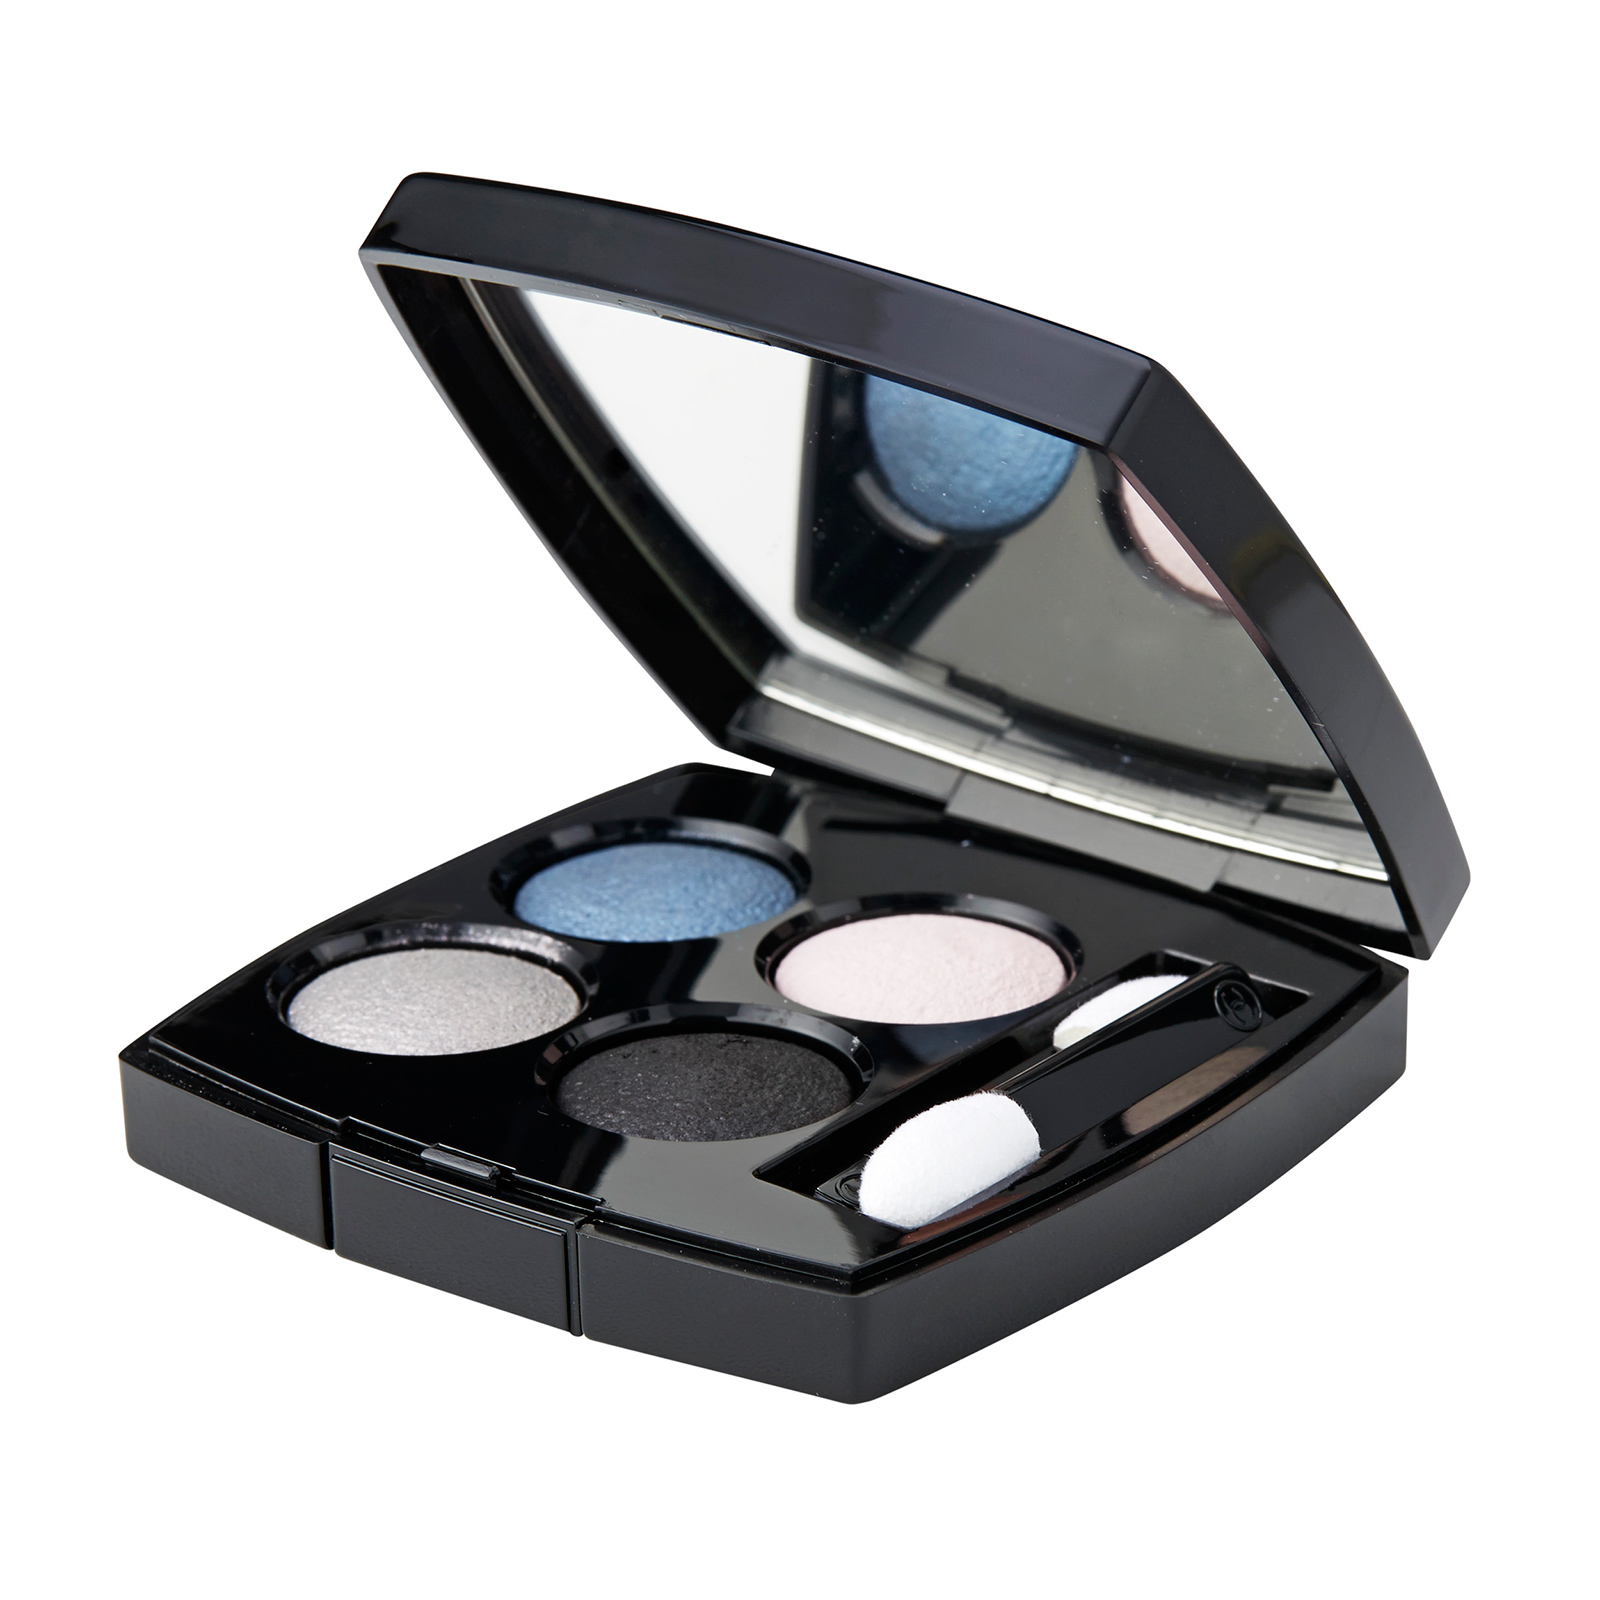 Chanel Les 4 Ombres  Multi-Effect Quadra Eyeshadow 224 Tisse Riviera, 0.07oz, 2g